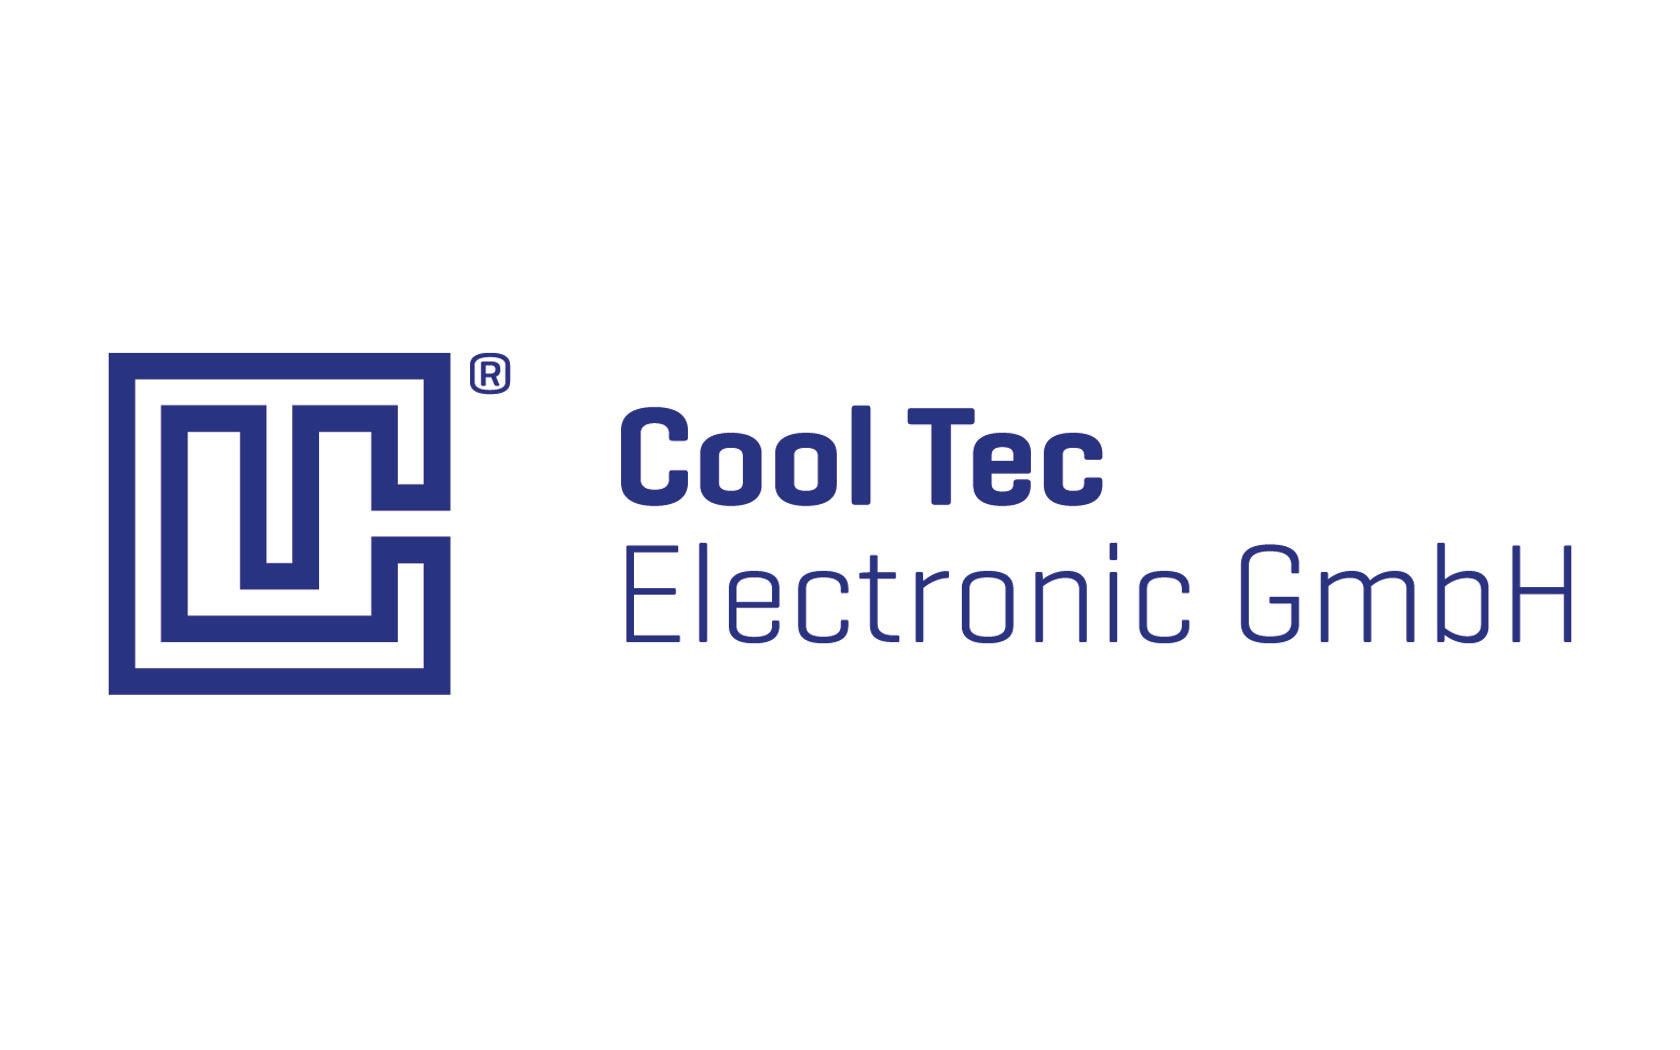 Image result for cool tec electronic gmbh